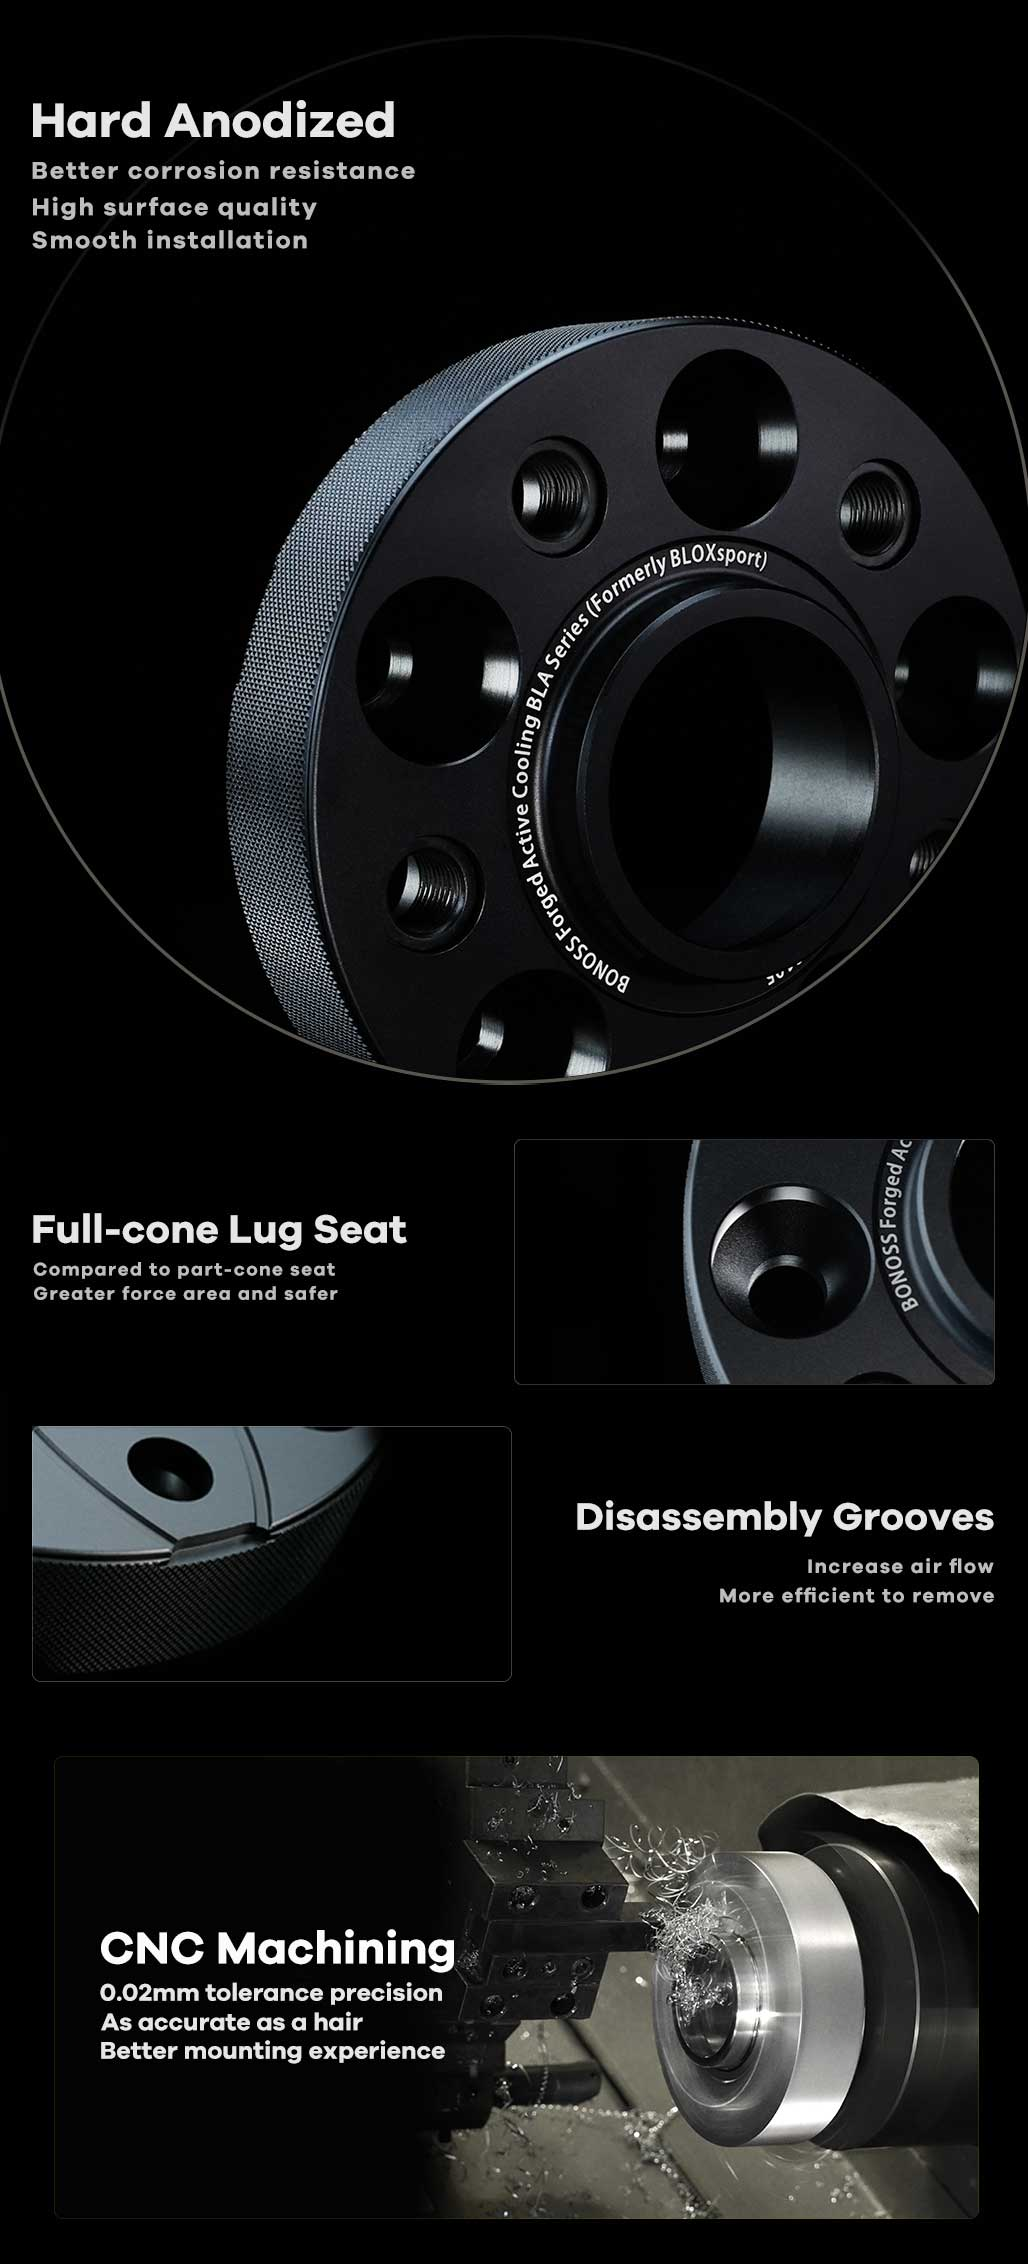 BONOSS-forged-active-cooling-wheel-spacer-Mercedes-Cclass-w205-w204-5x112-66.5-M14x1.5-6061T6-by-grace-2